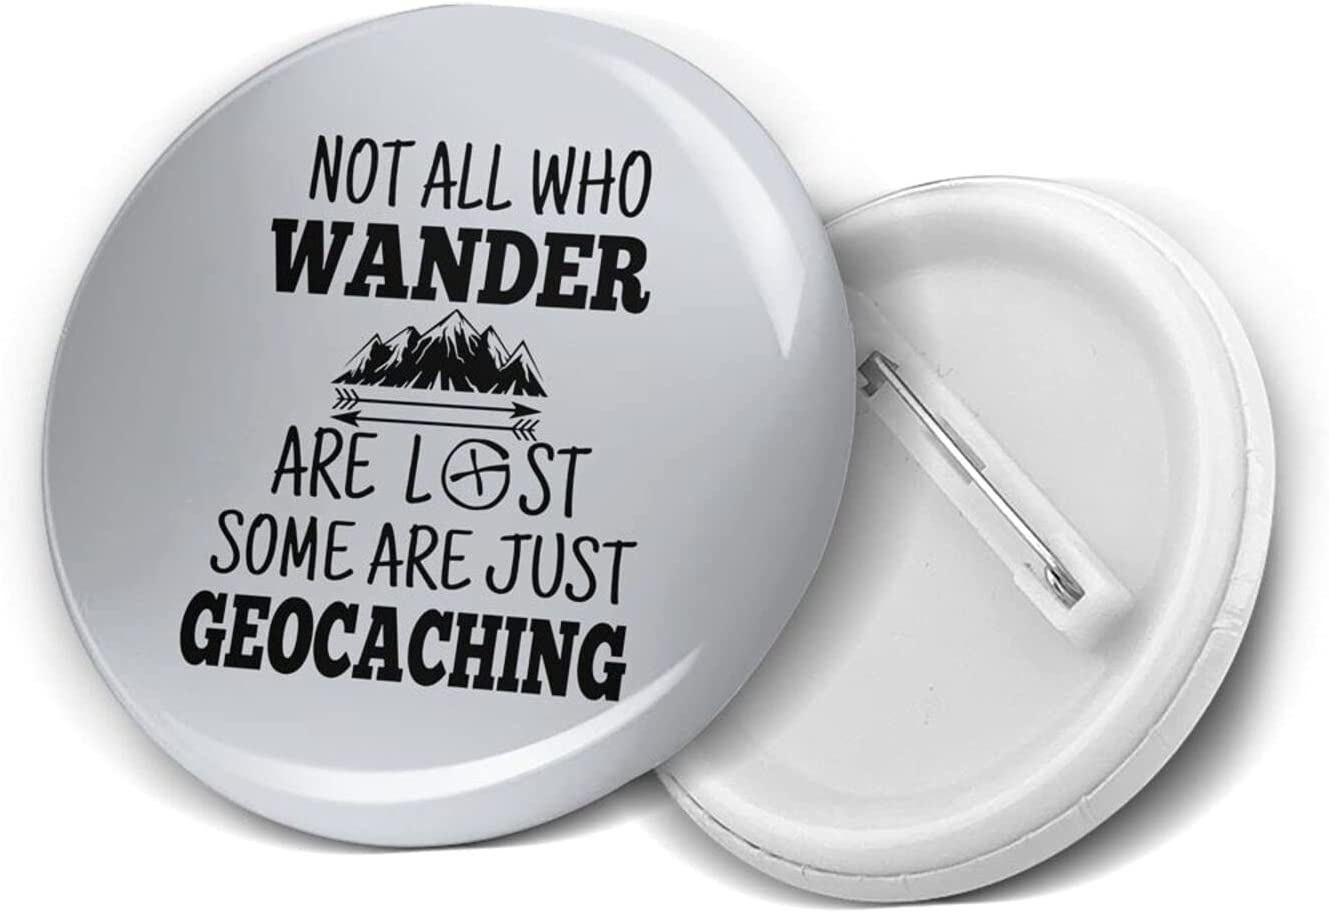 Not All Wander Lost Geocaching 1.2/1.8/2.3 Inch Round Pins Brooches Button Medal Tinplate Brooches Emblem Adult Children Pin Badges Decor for Backpacks Costume